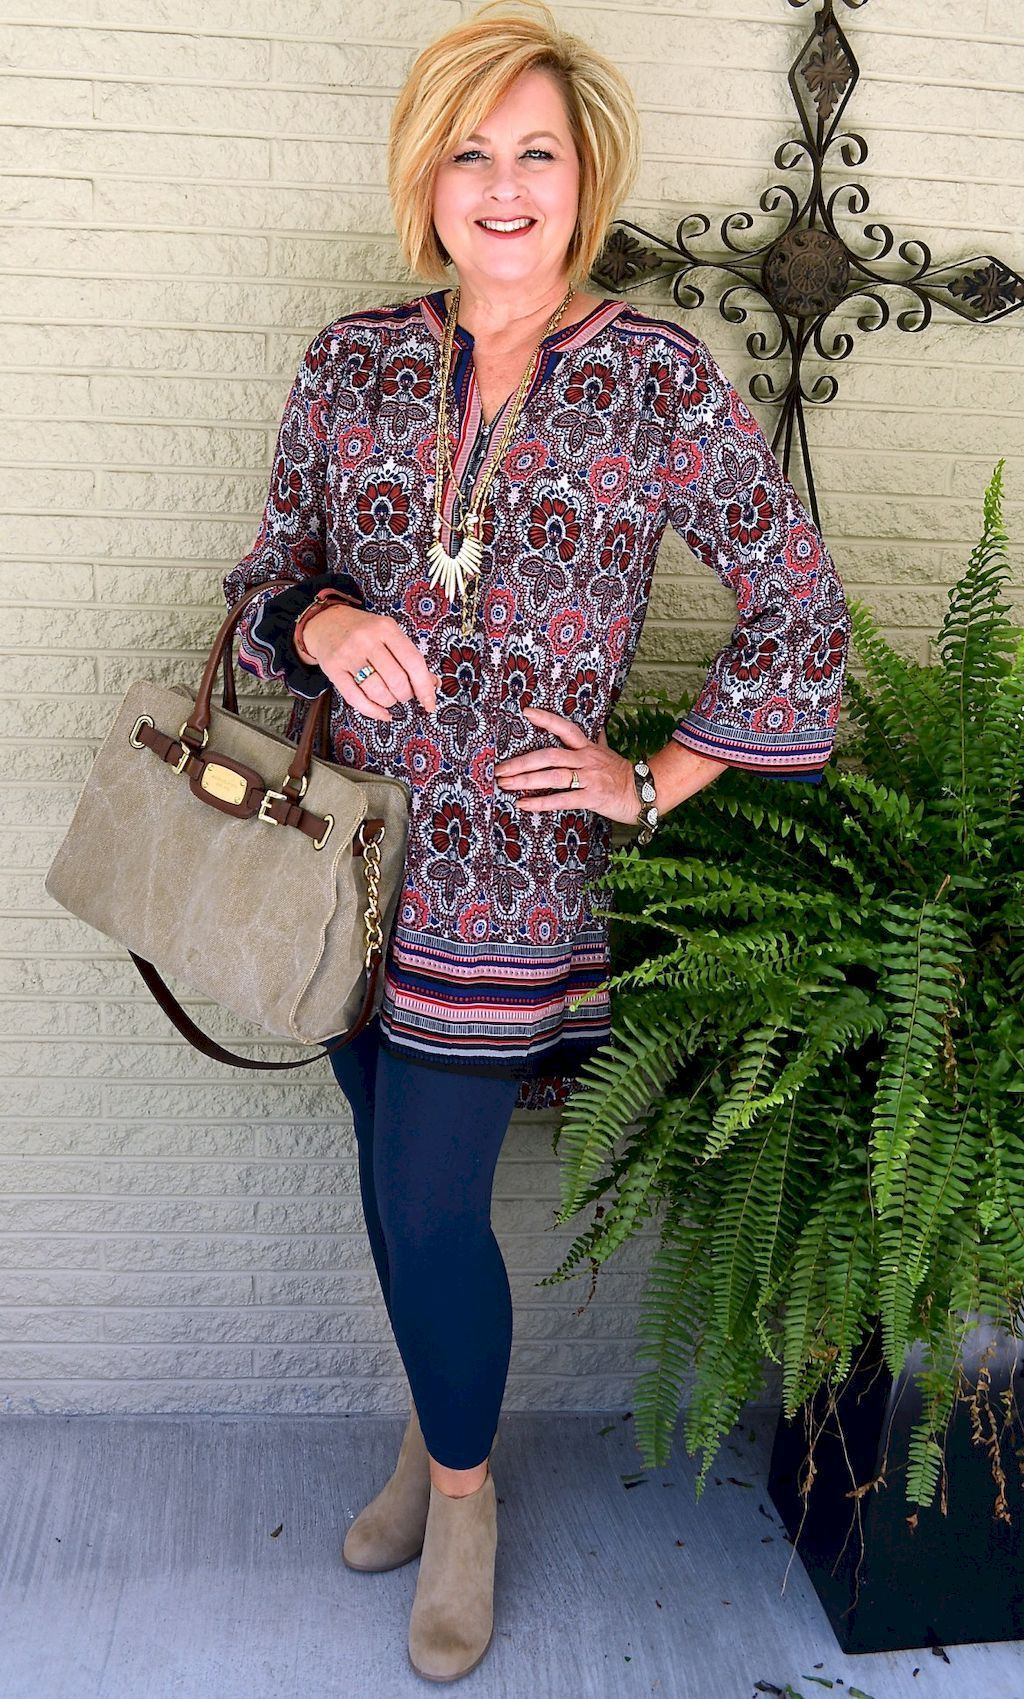 Beautiful stitch fix summer style for women over 40 (37